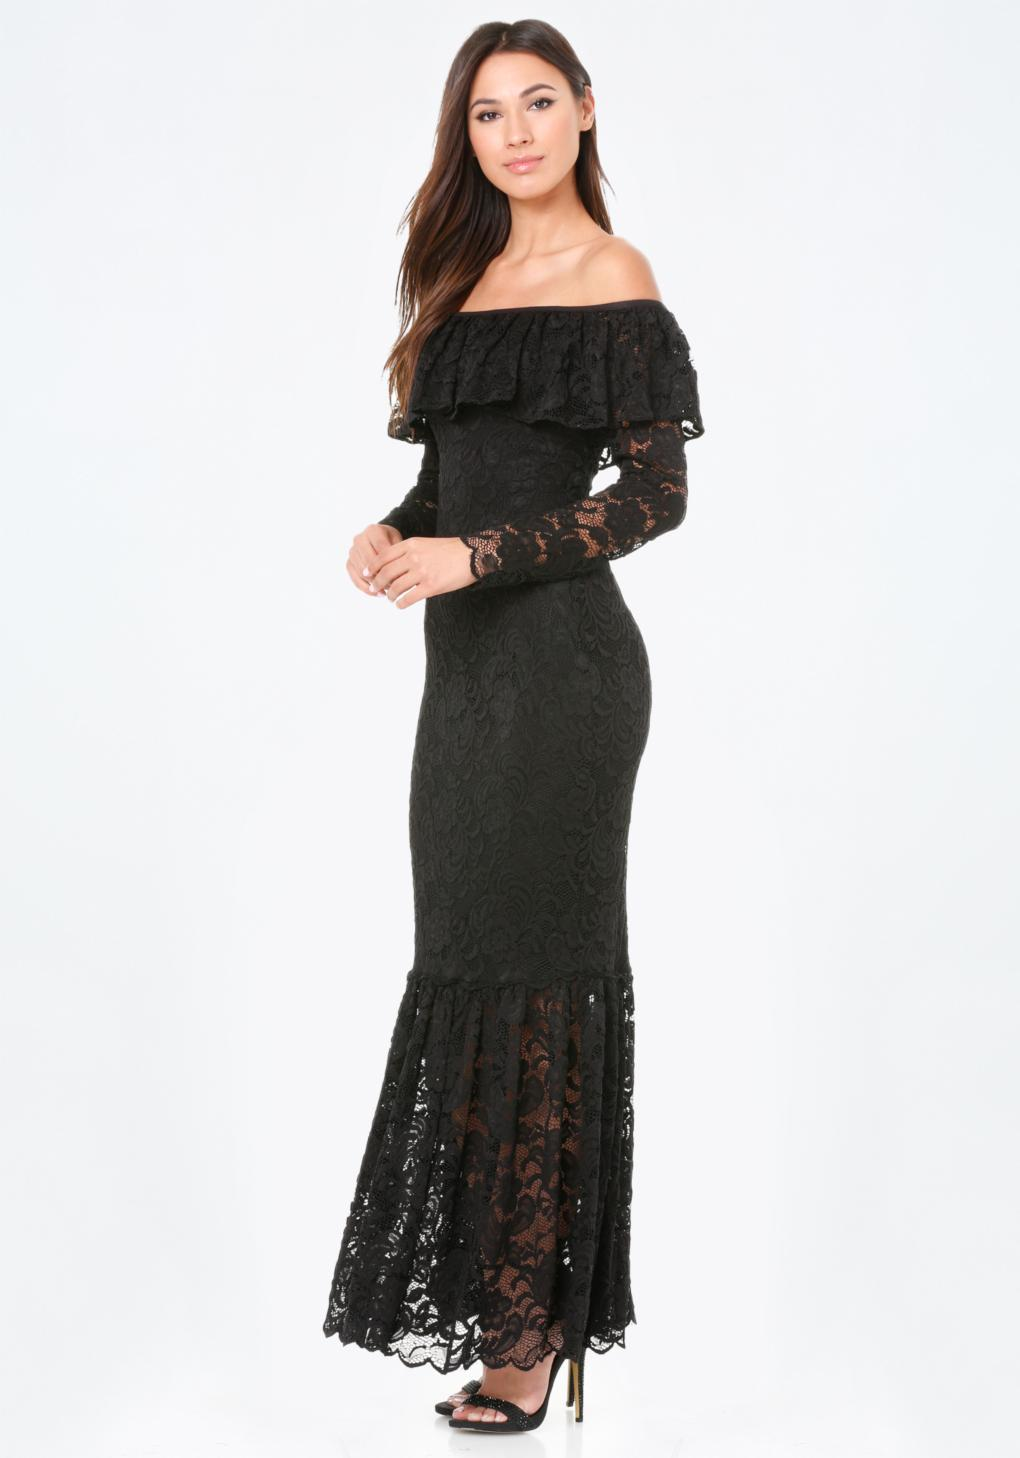 You searched for: ruffle maxi dress! Etsy is the home to thousands of handmade, vintage, and one-of-a-kind products and gifts related to your search. No matter what you're looking for or where you are in the world, our global marketplace of sellers can help you find unique and affordable options. Let's get started!